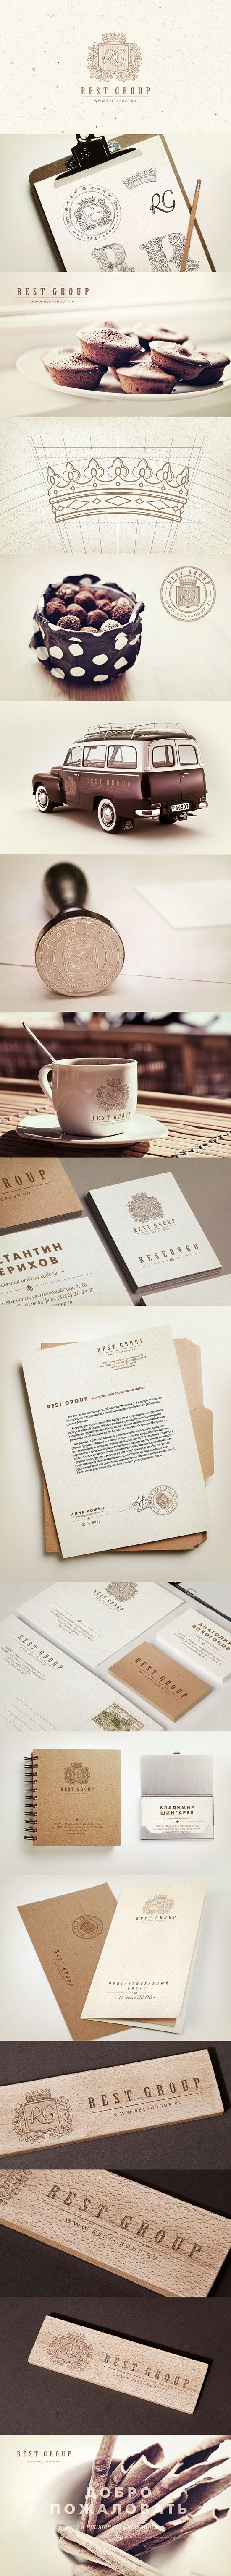 Rest Group, Identity ~ #LogoDesign #GraphicDesign #Inspiration